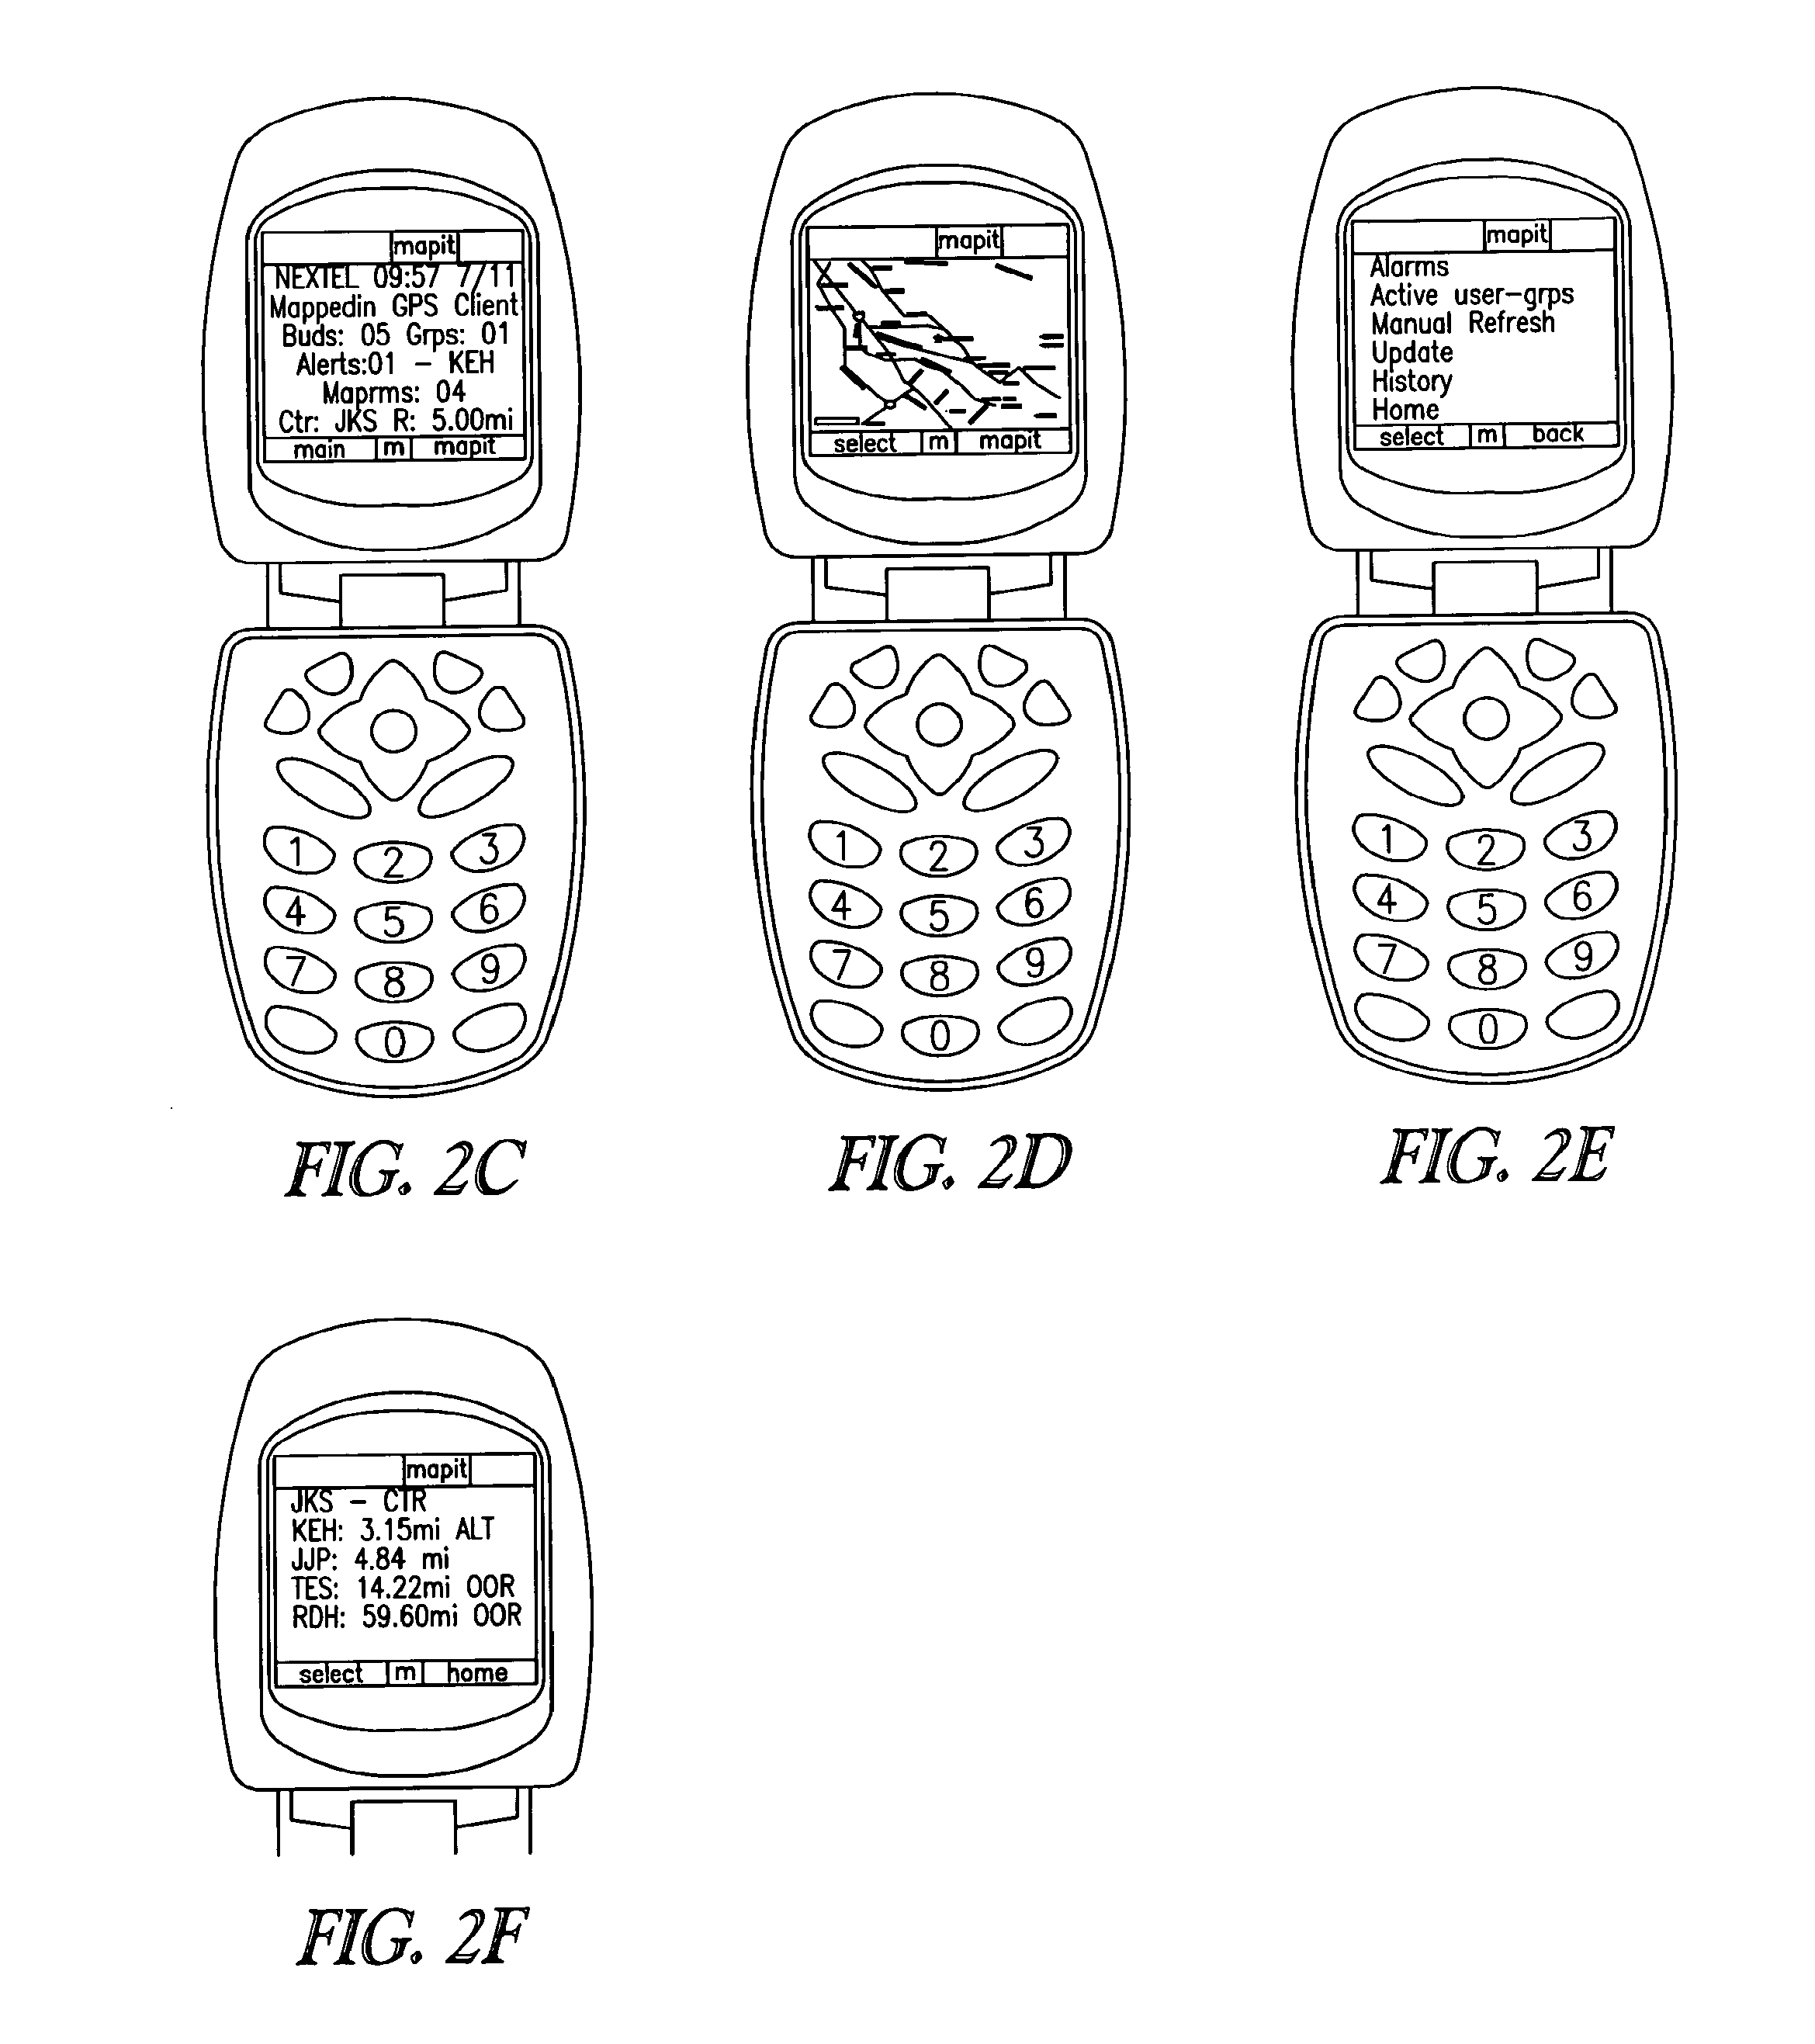 Us8385964b2 methods and apparatuses for geospatial based sharing us8385964b2 methods and apparatuses for geospatial based sharing of information by multiple devices google patents fandeluxe Choice Image